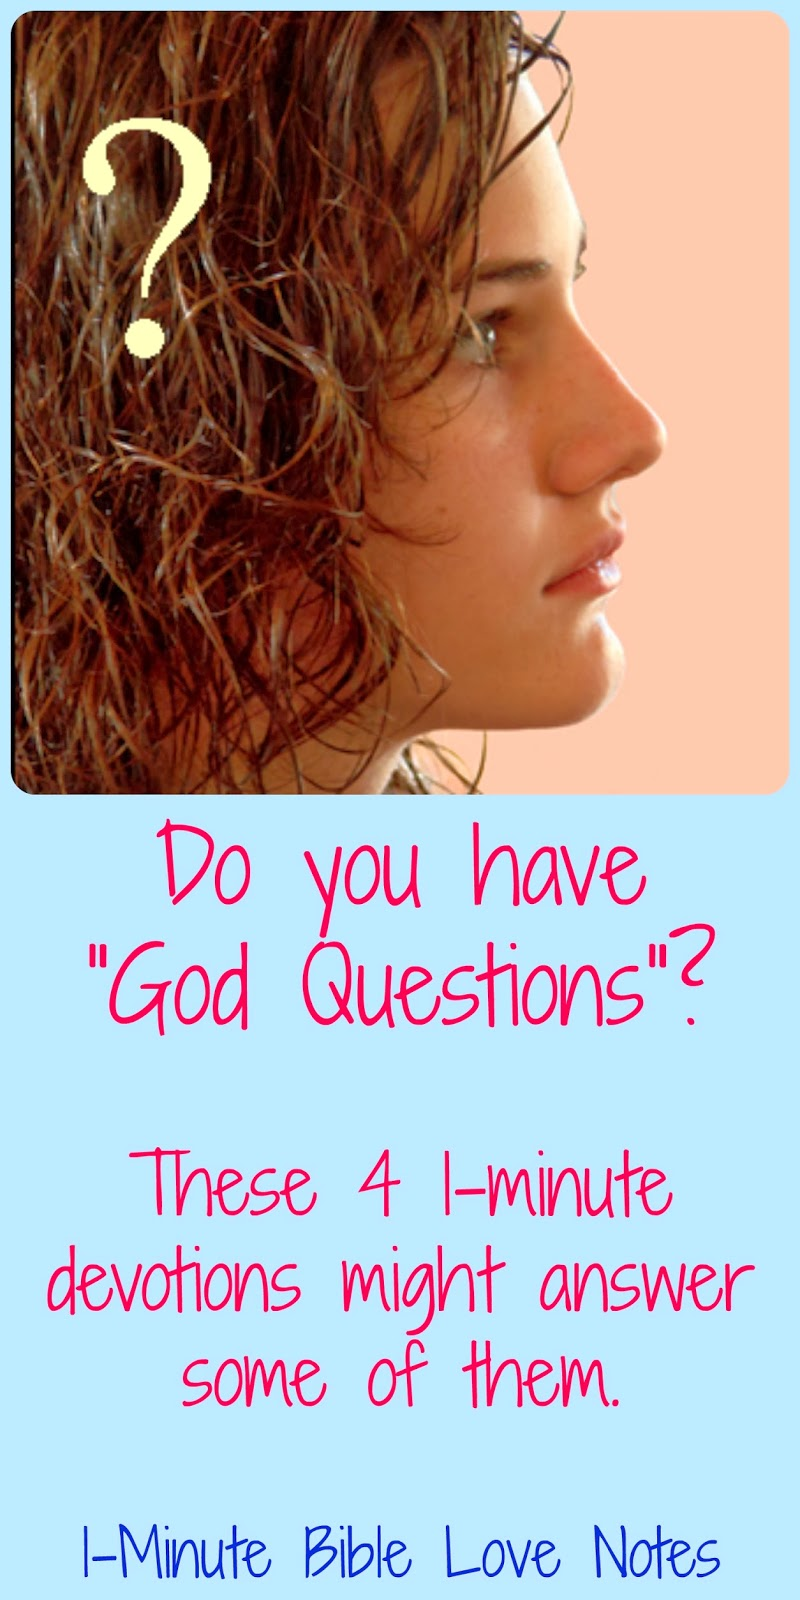 We all have questions about God, answering God questions, Bible